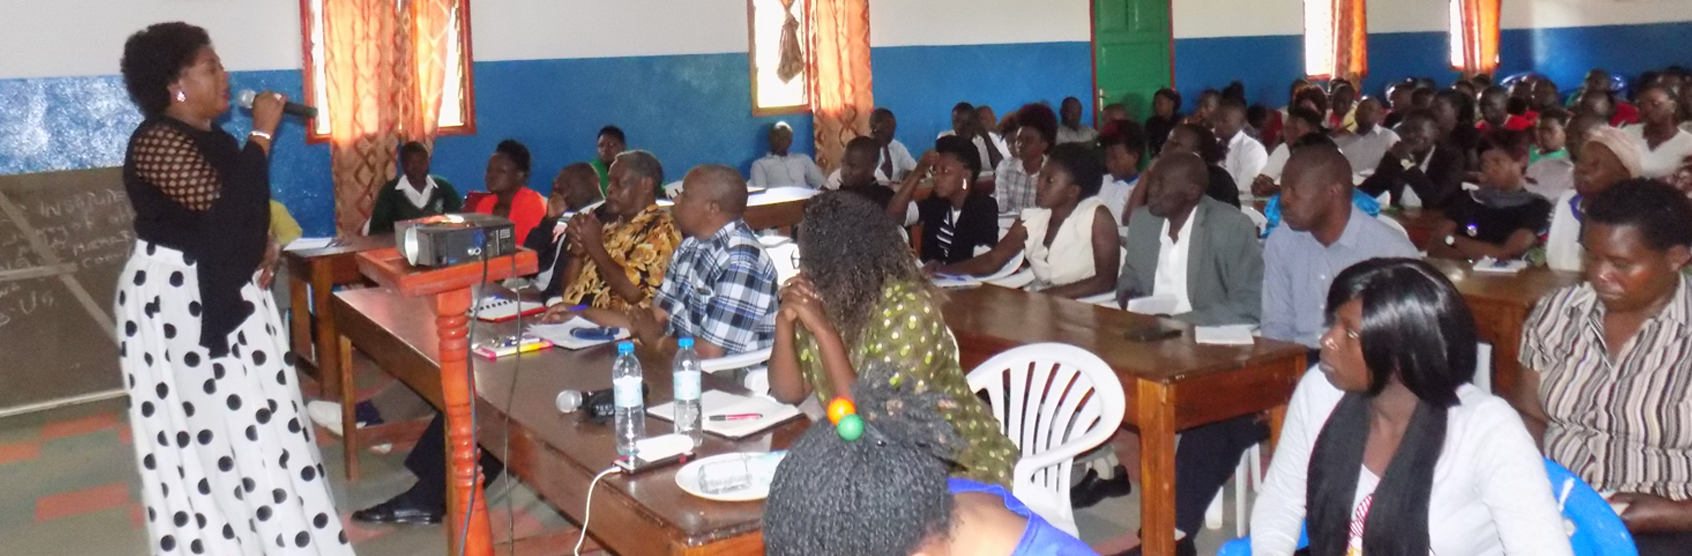 ARU Holds a Public Lecture on Integrating Skills in Higher Education